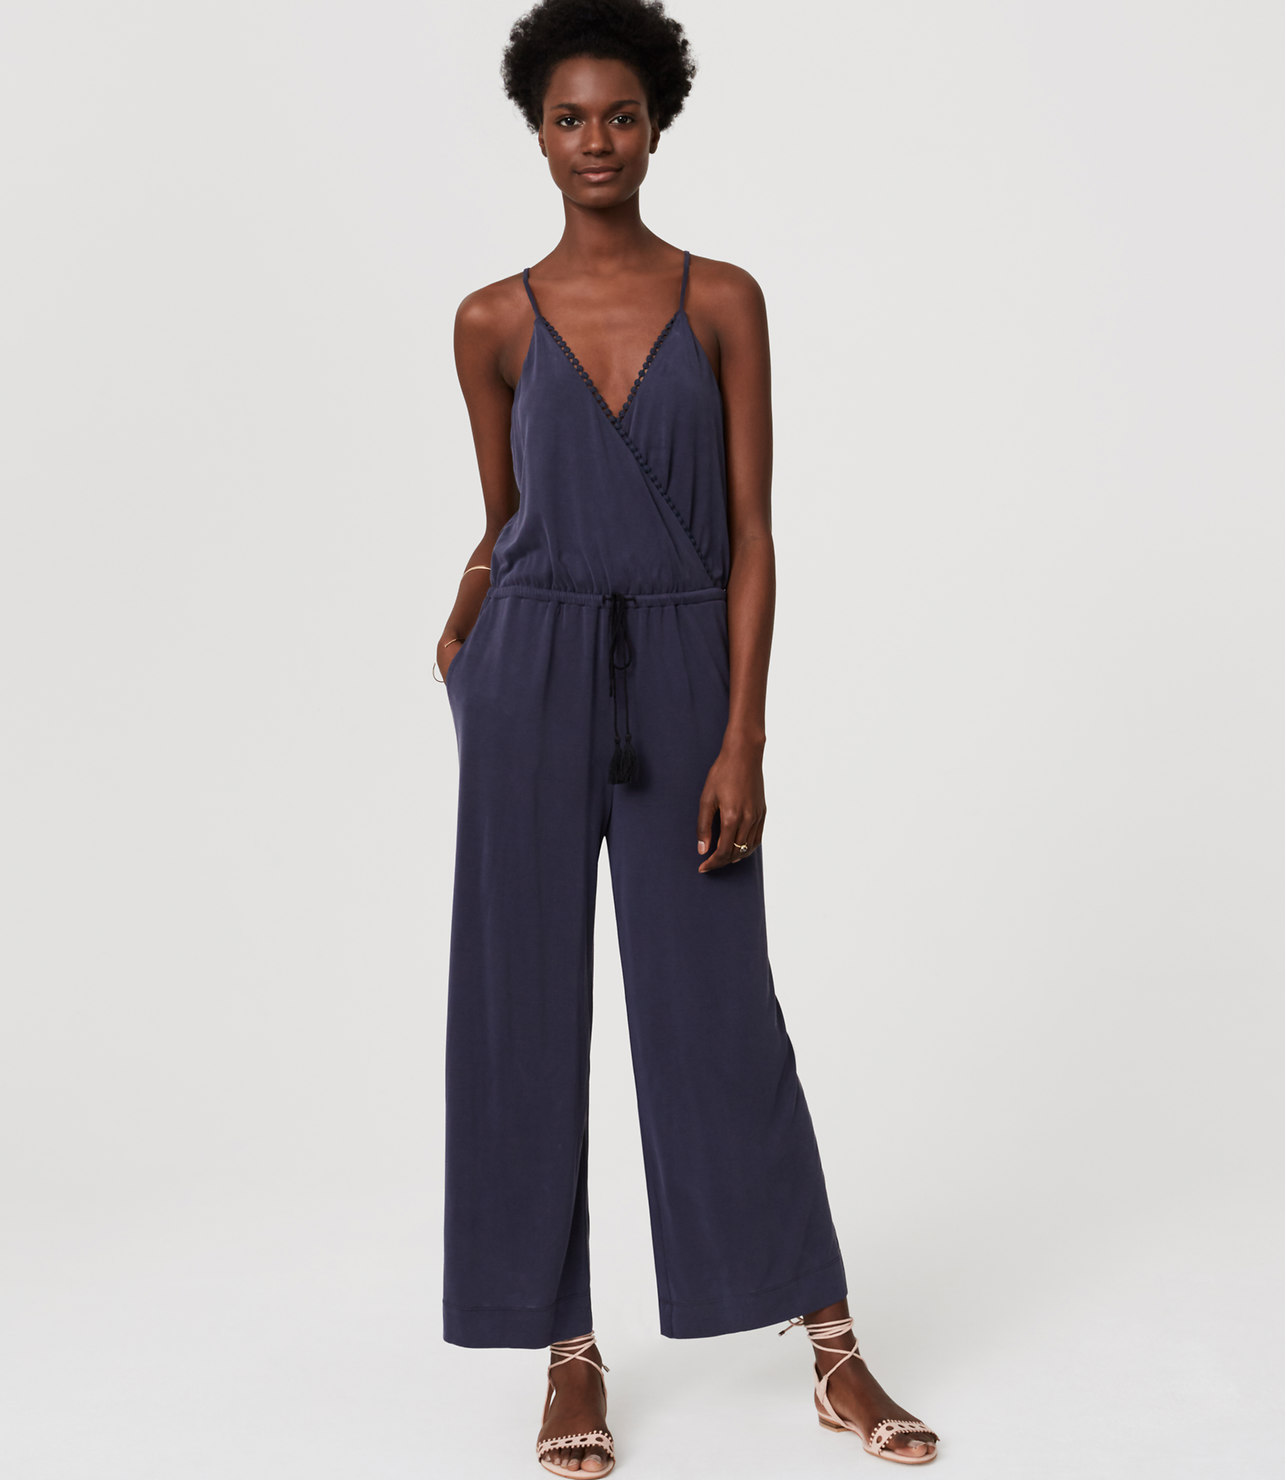 Beach Lacy Drawstring Jumpsuit, The Loft , $79.50